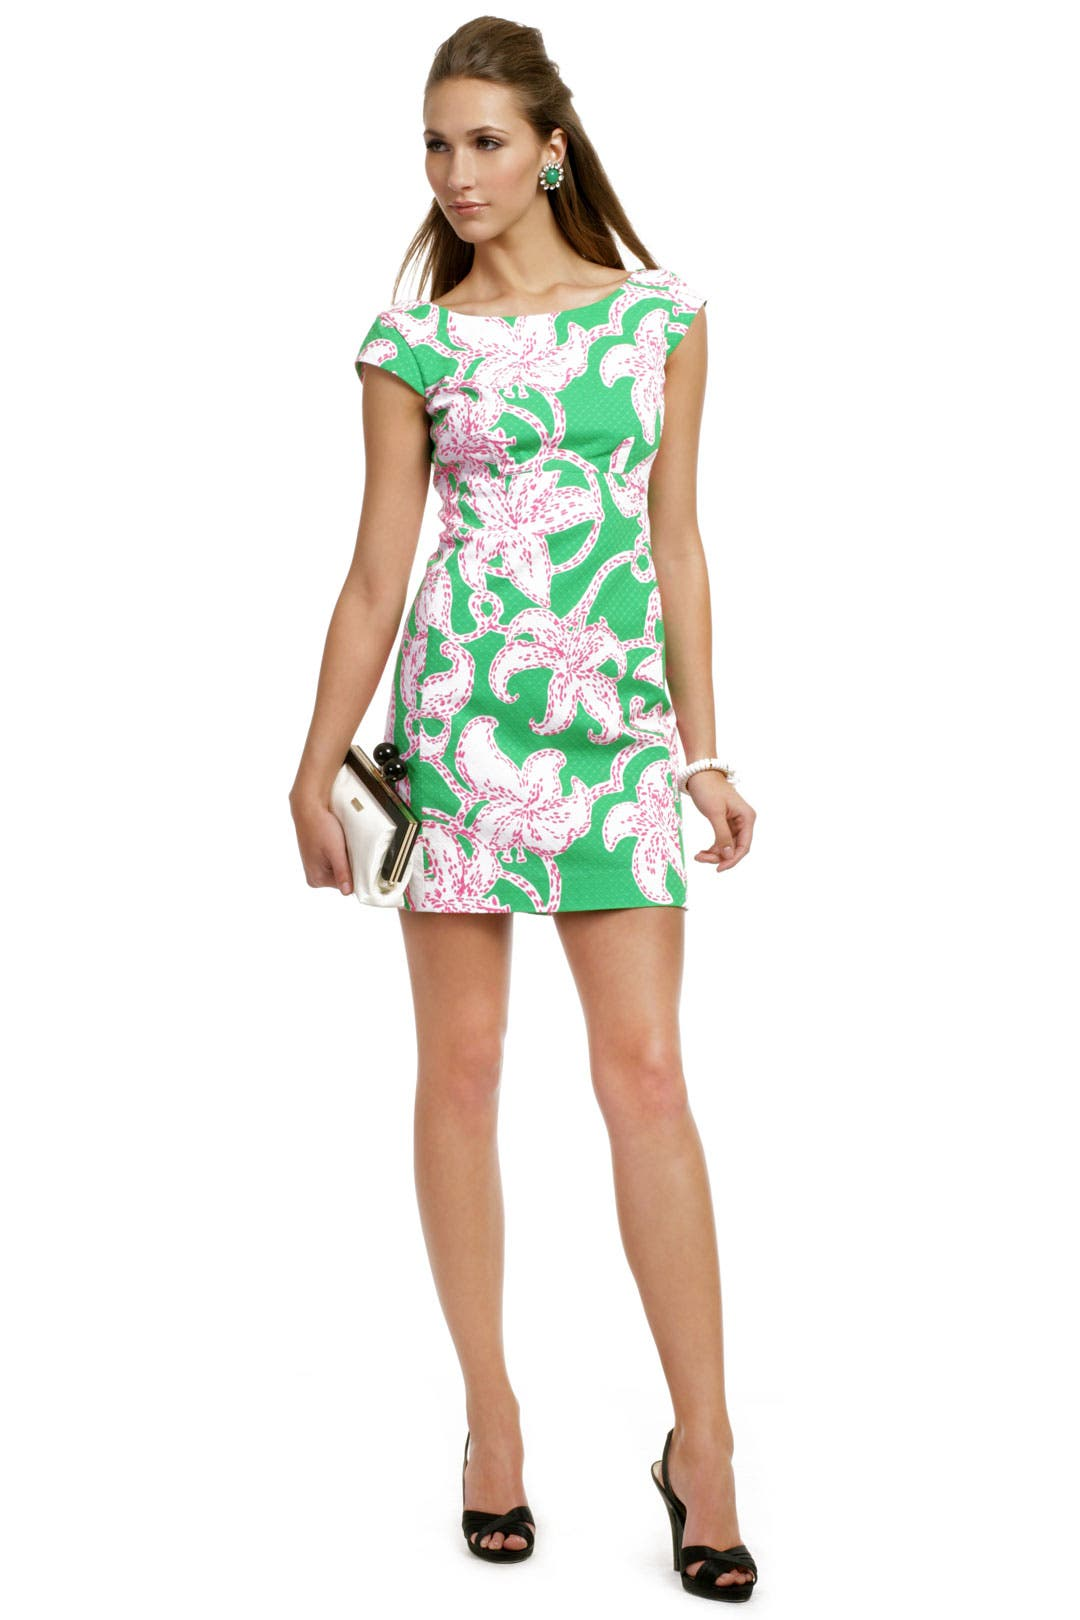 On Sale Lilly Pulitzer Dresses Online Sale